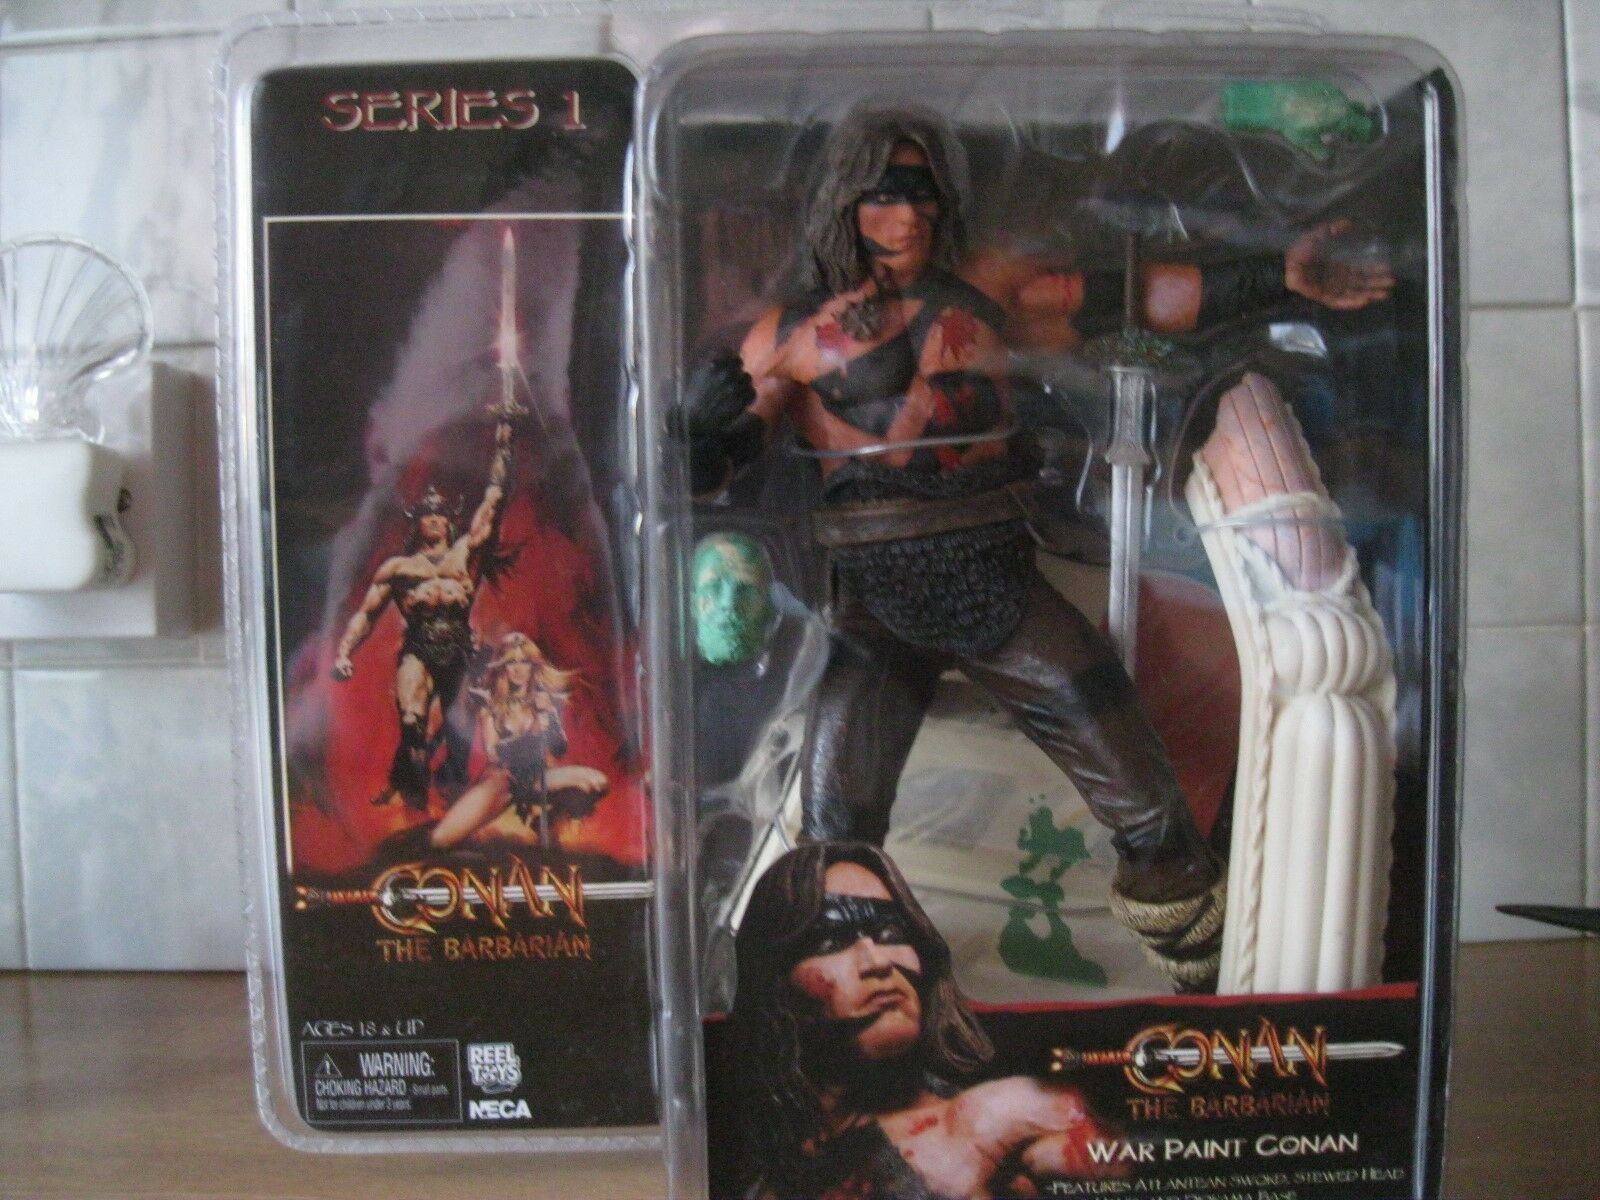 Neca serie 1 Conan the Barbarian War Paint Conan Temple of Thulsa Doom New MOC